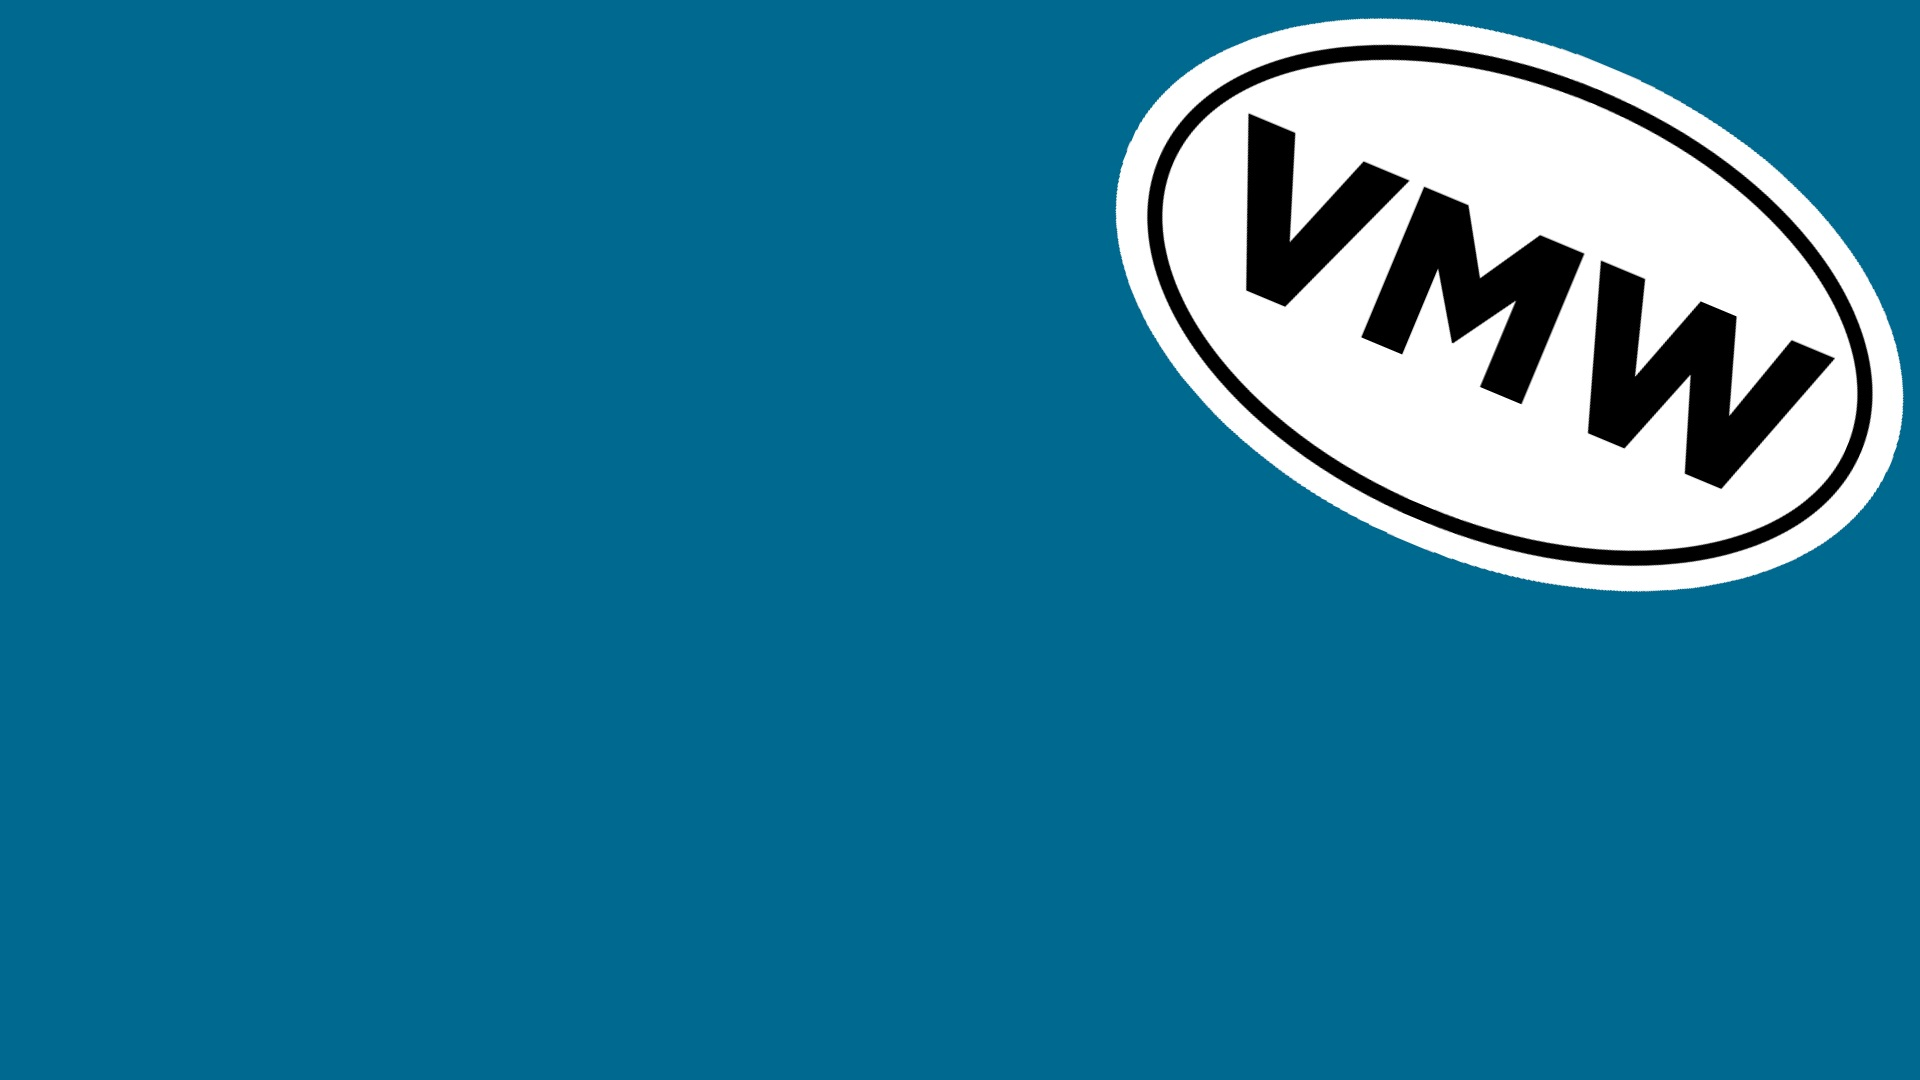 plain_vmware_blue3_vmw_sticker